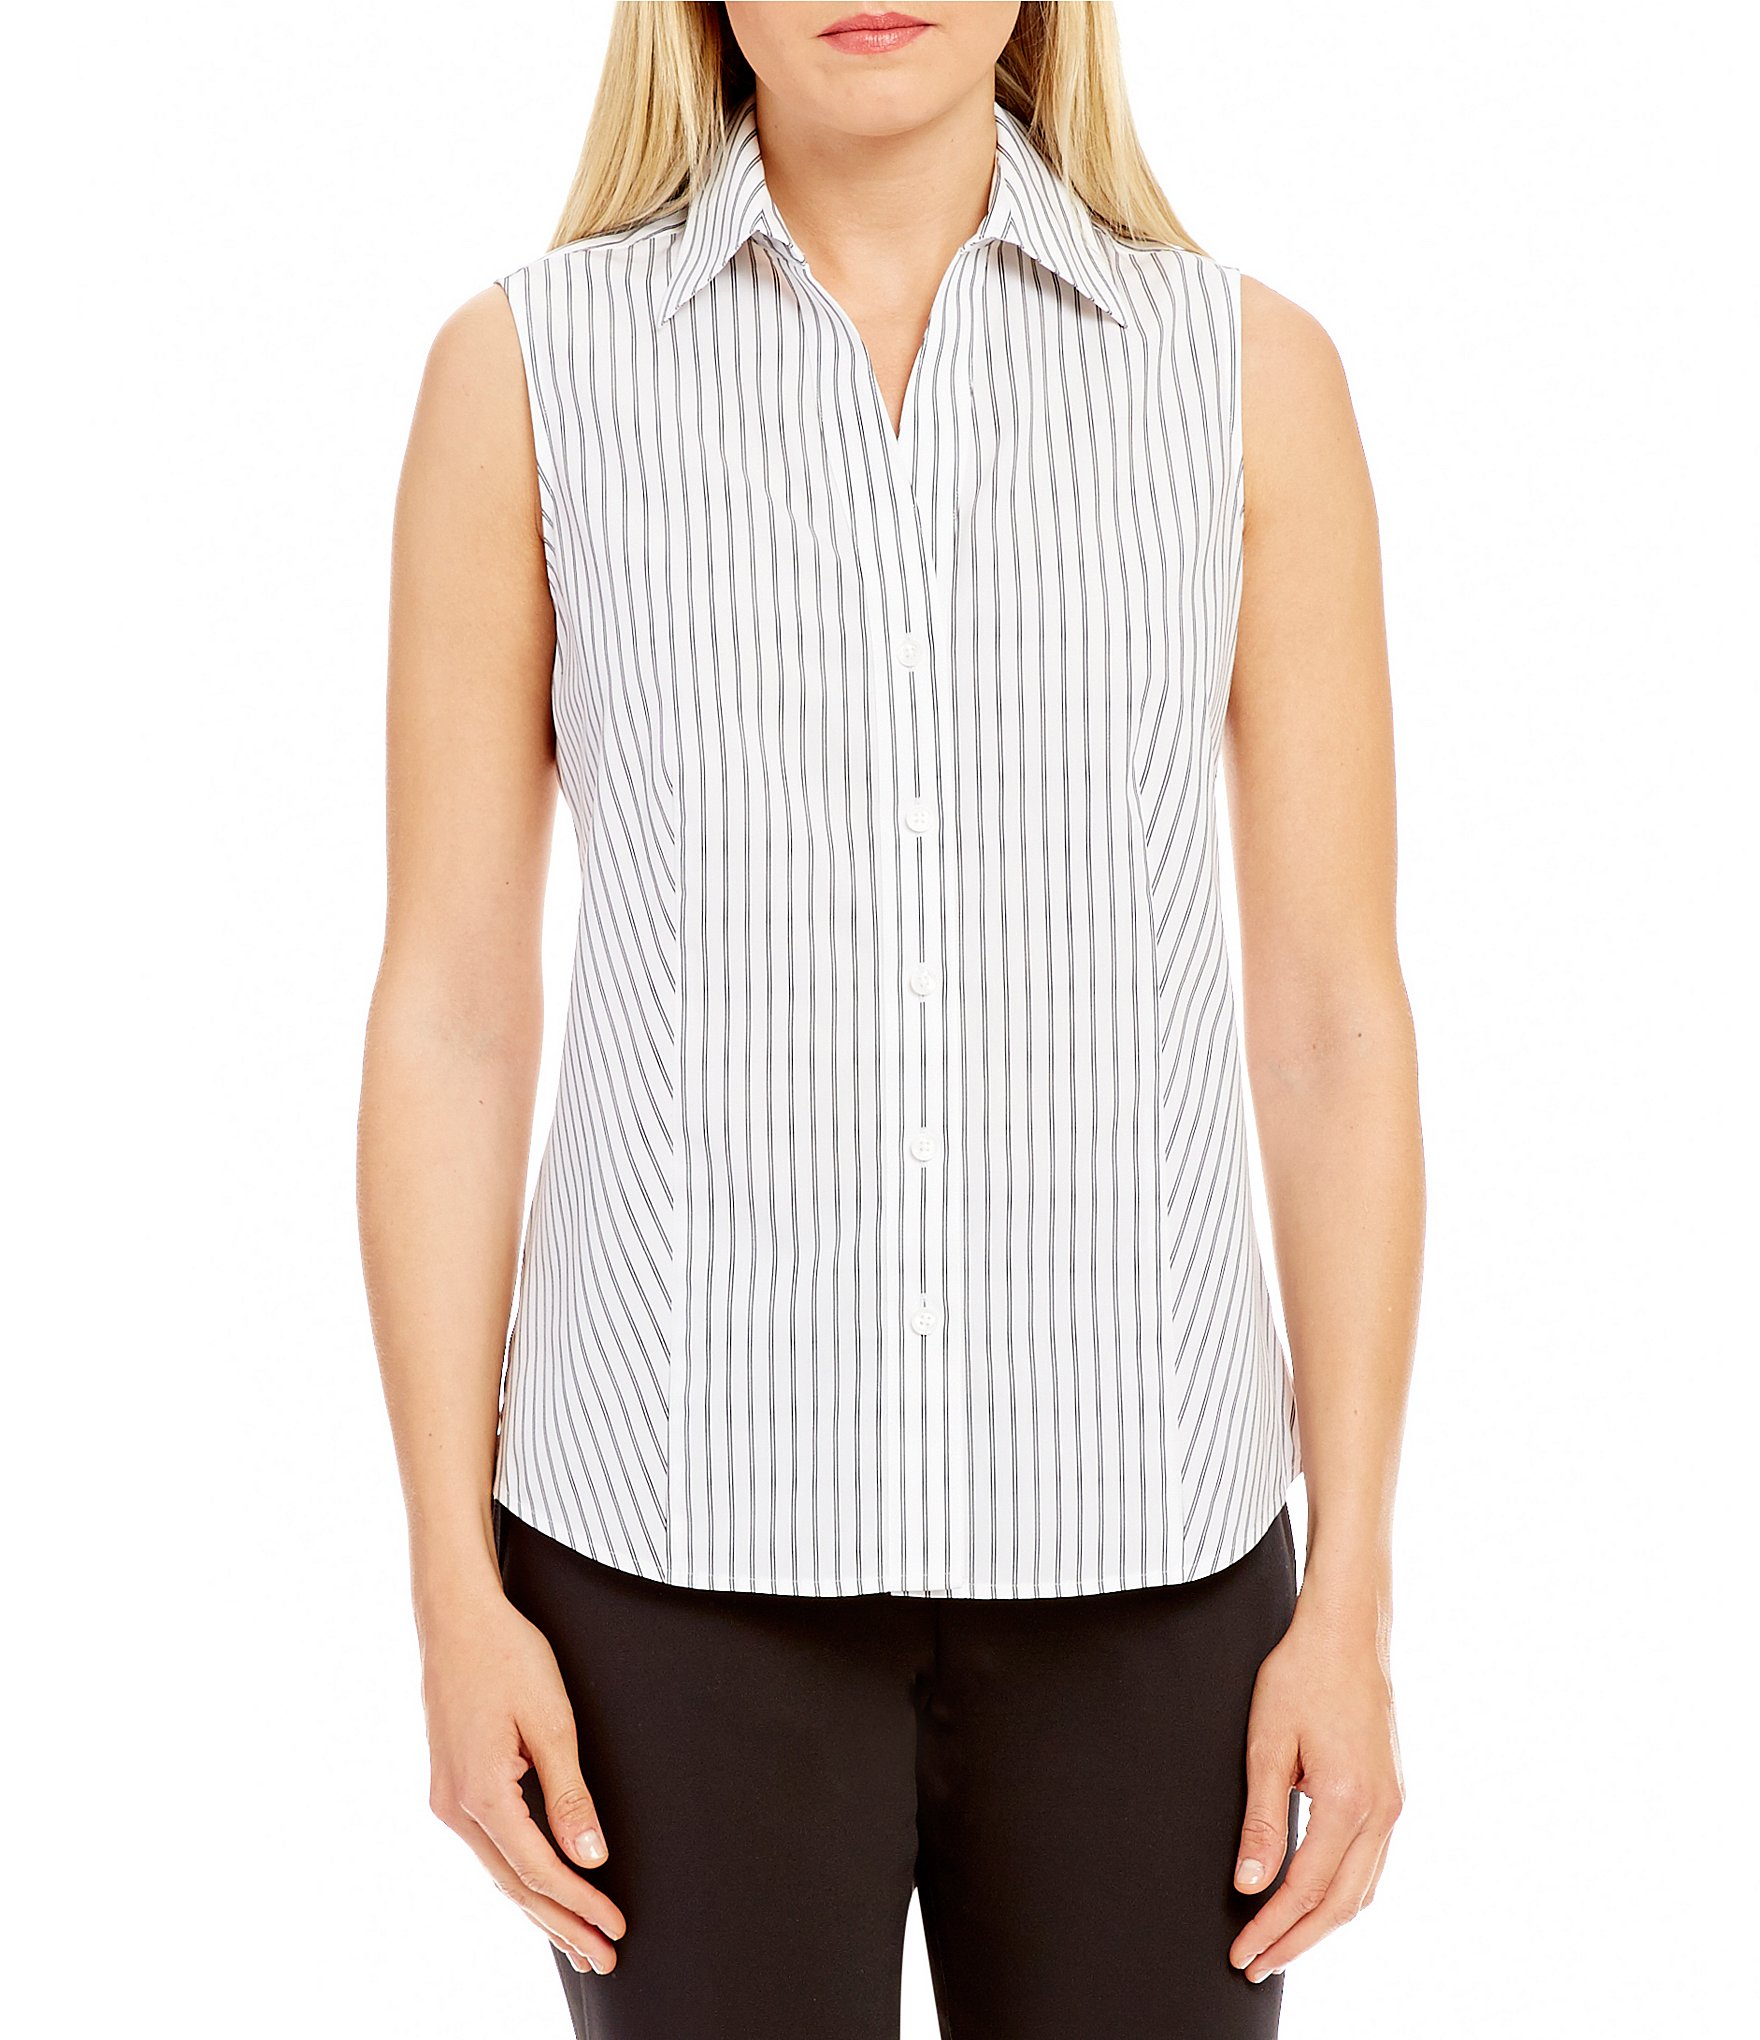 Pierced Button Front Sleeveless White Blouse on sale only US$ now, buy cheap Pierced Button Front Sleeveless White Blouse at allshop-eqe0tr01.cf